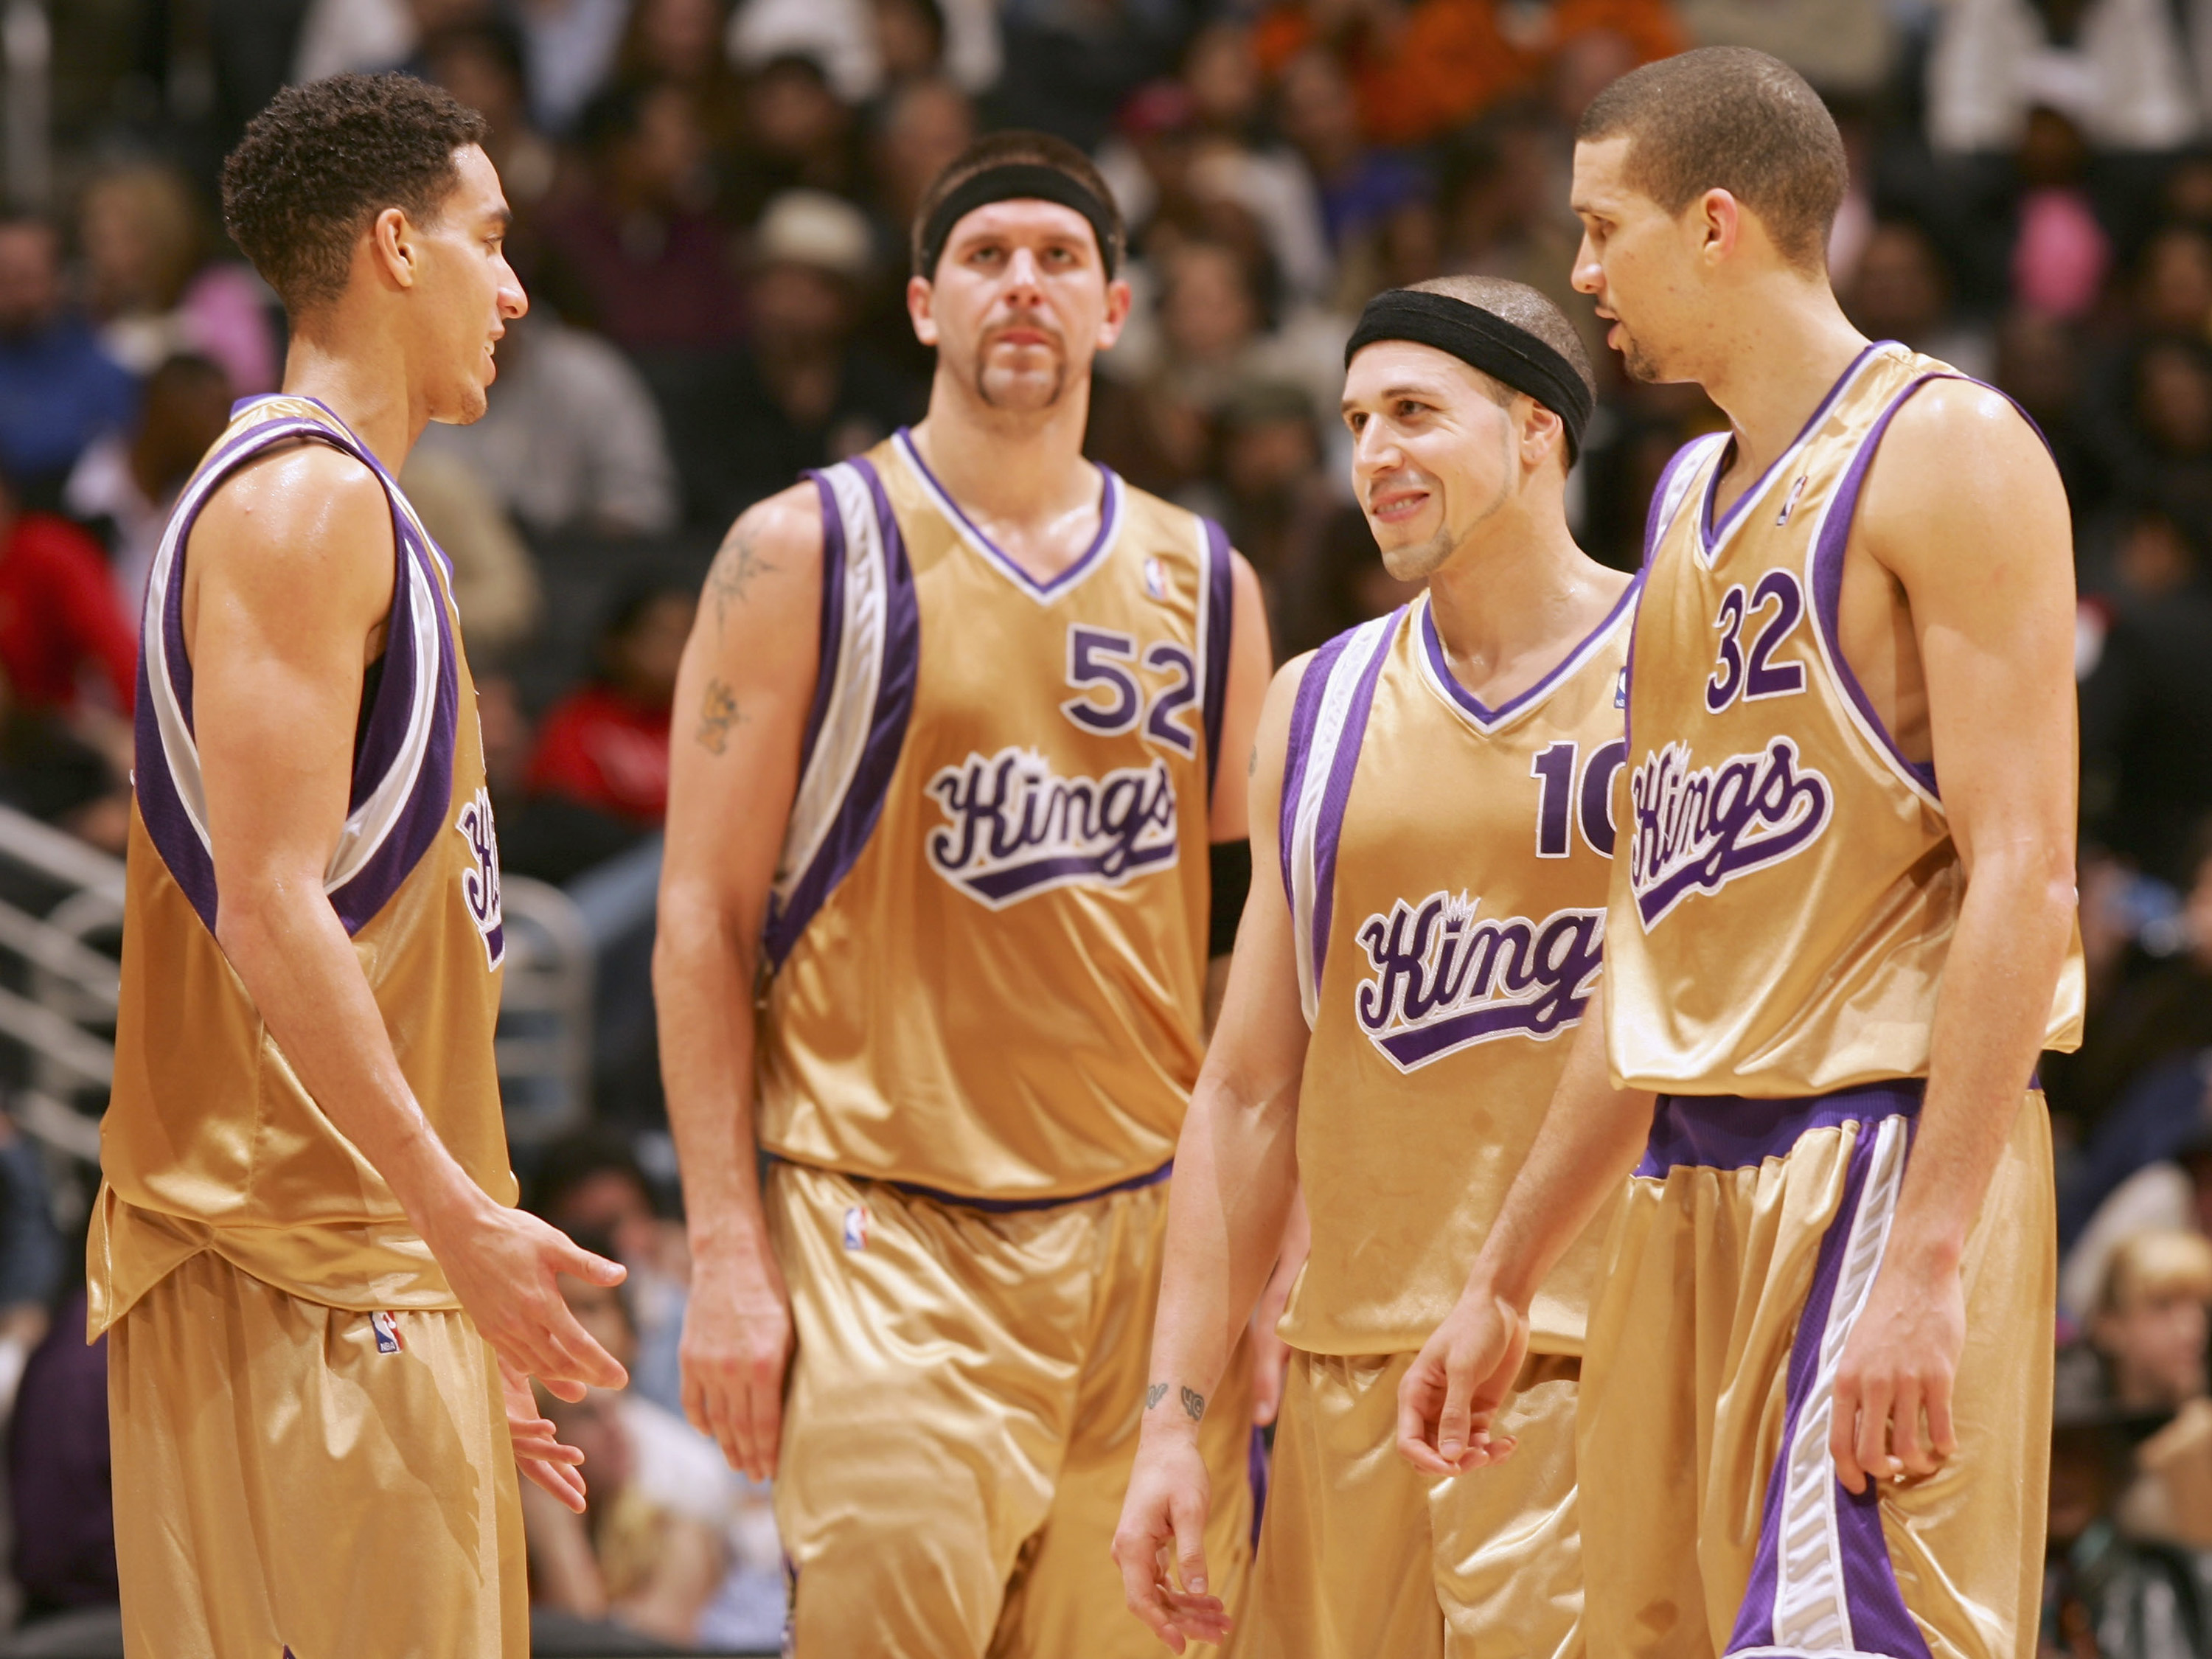 This was not made for royalty. The liberal use of gold only makes these jerseys look tacky. These were alternate jerseys for a reason, and they only lasted two seasons before the Kings retired them.